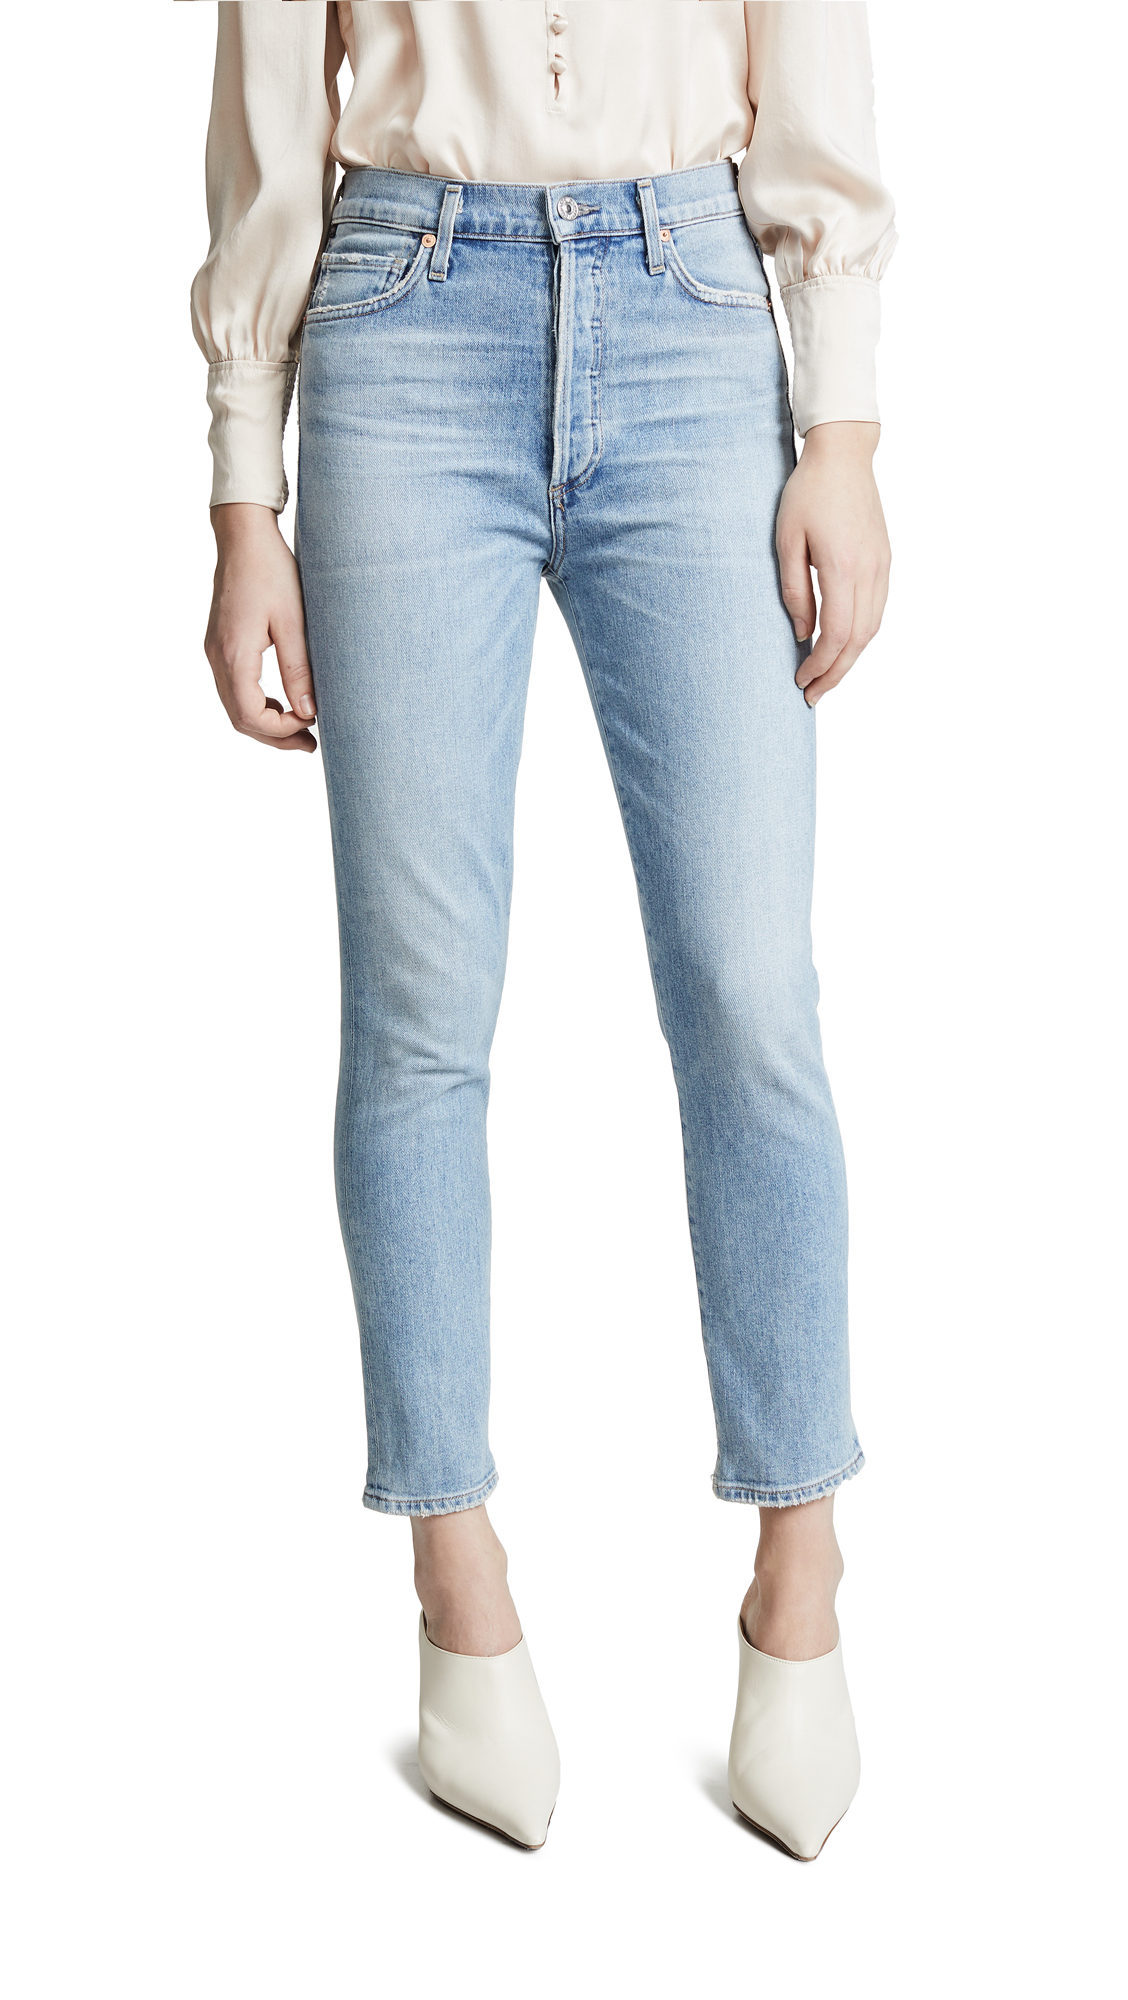 Citizens of Humanity Olivia Crop High Rise Slim Ankle Jeans - Renew